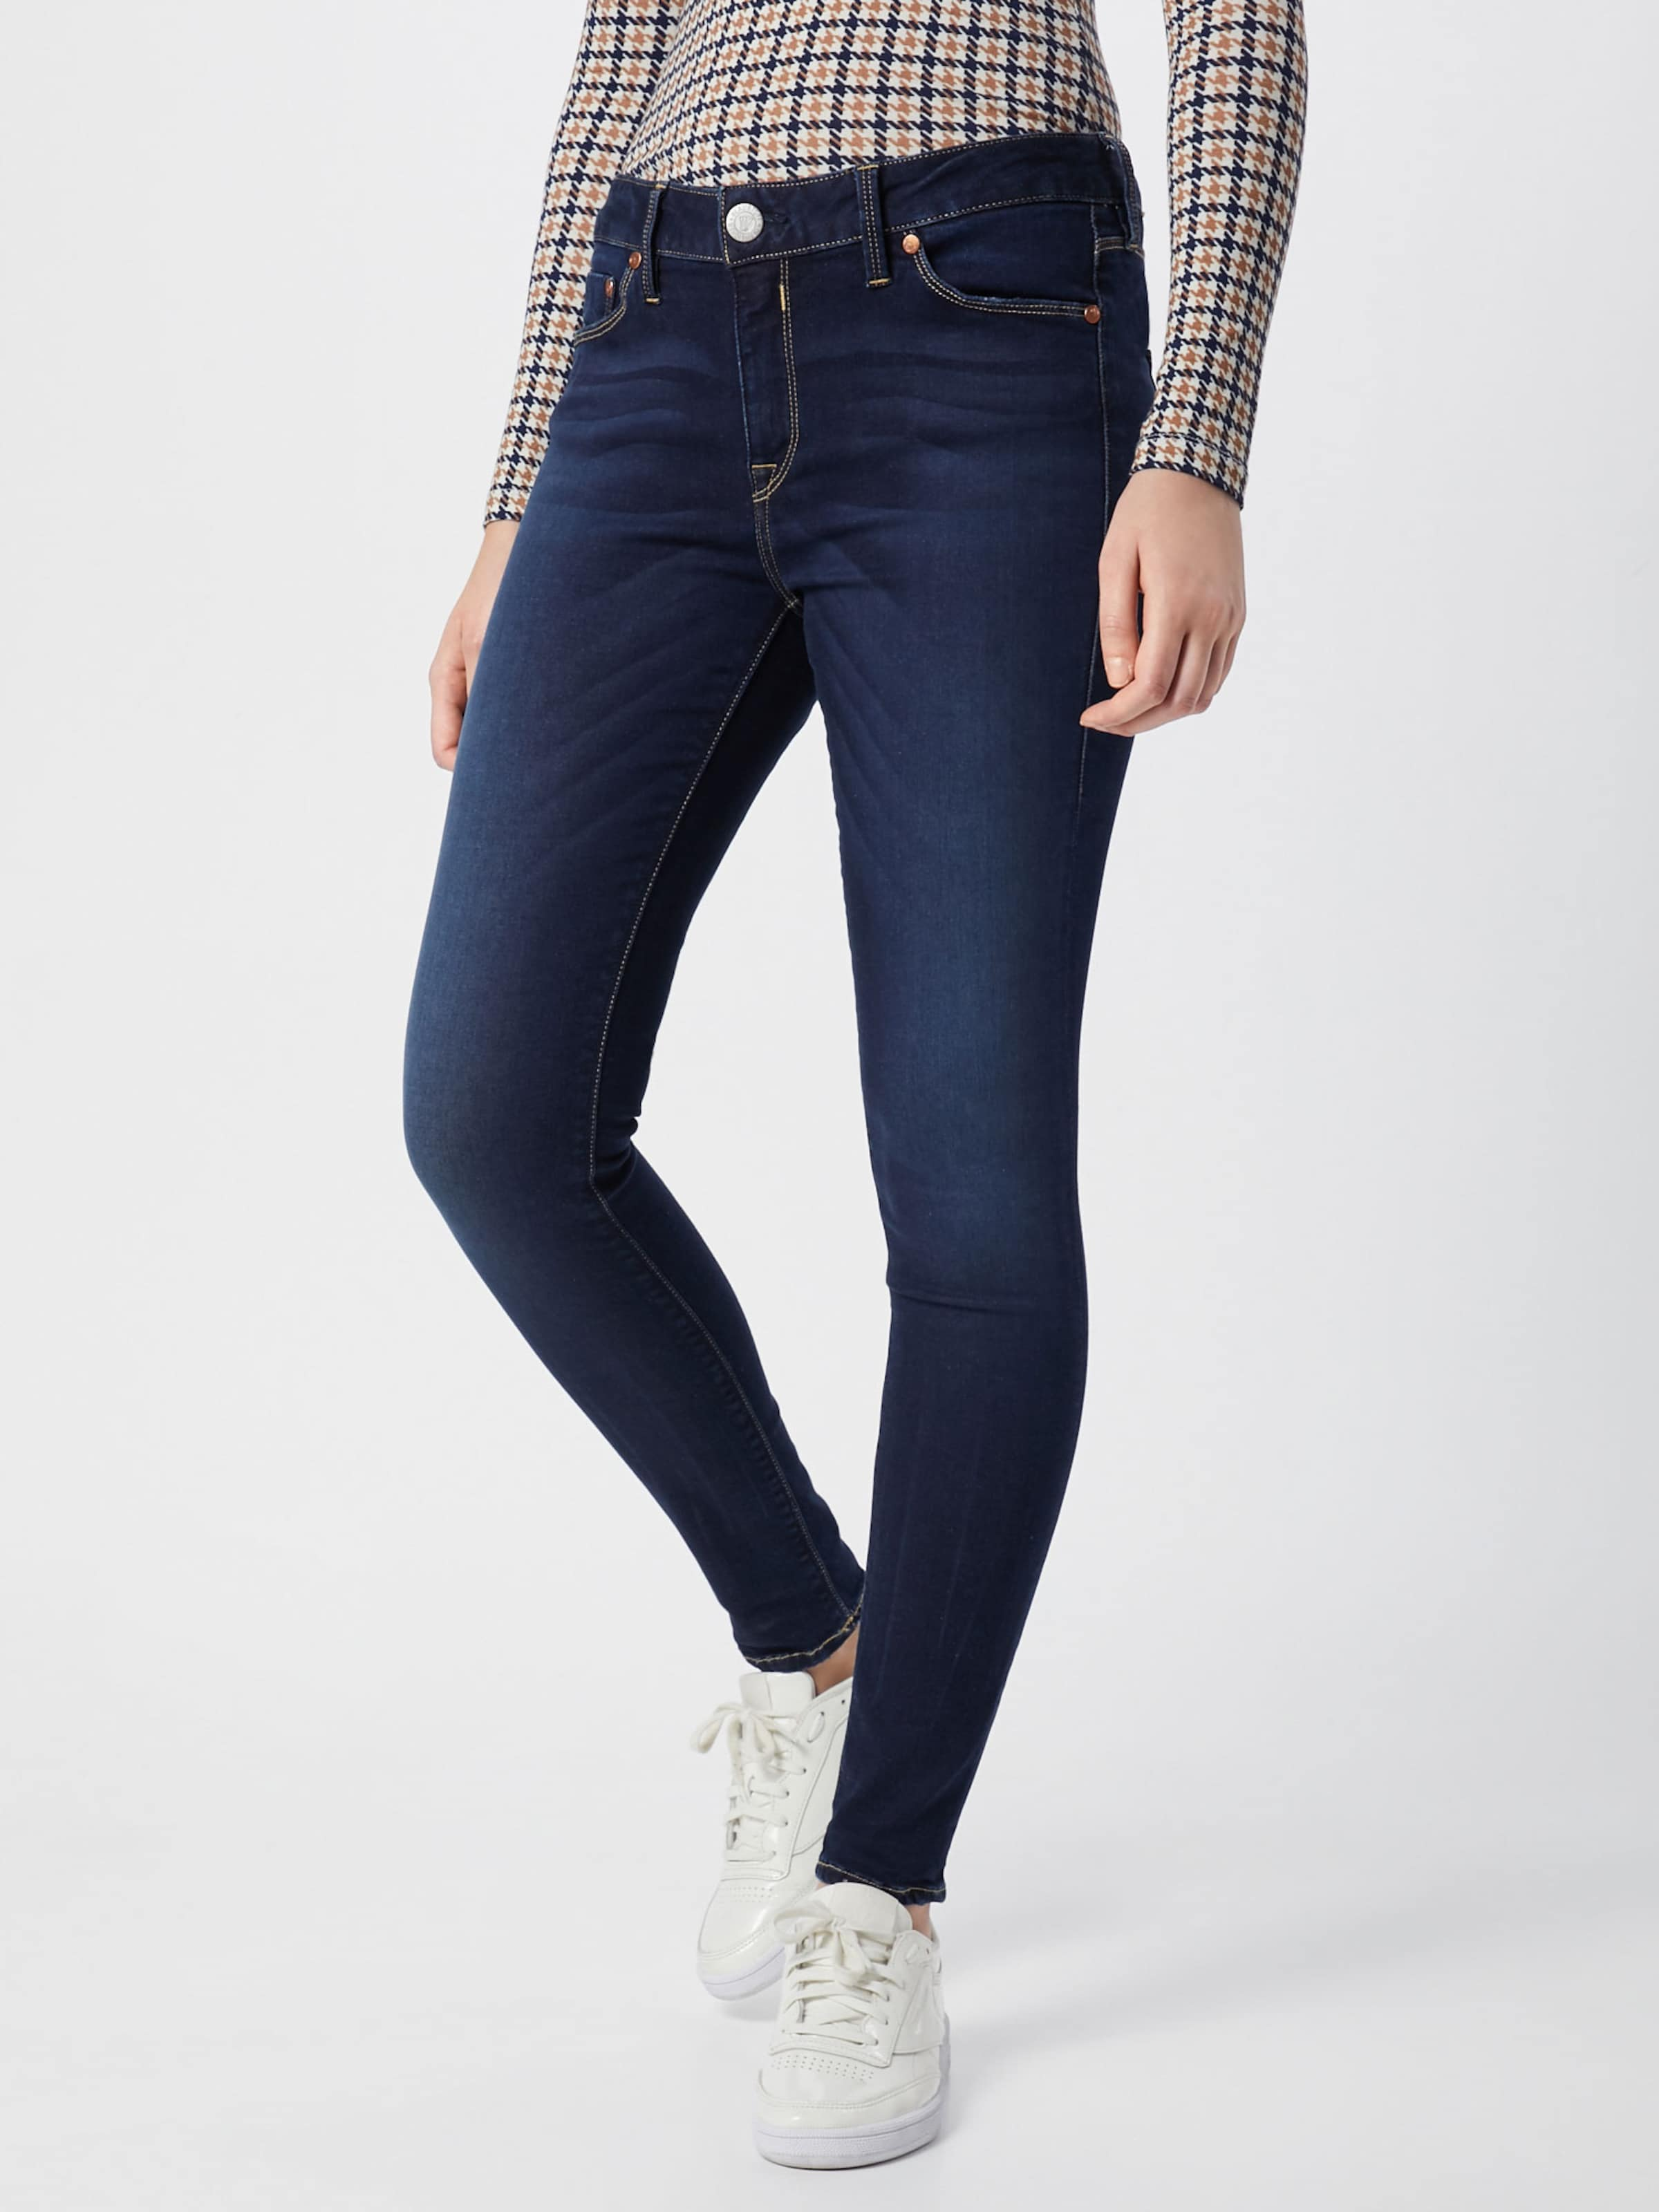 Powerstretch' 'superslim Herrlicher In Jeans Dunkelblau Denim TFul3K1Jc